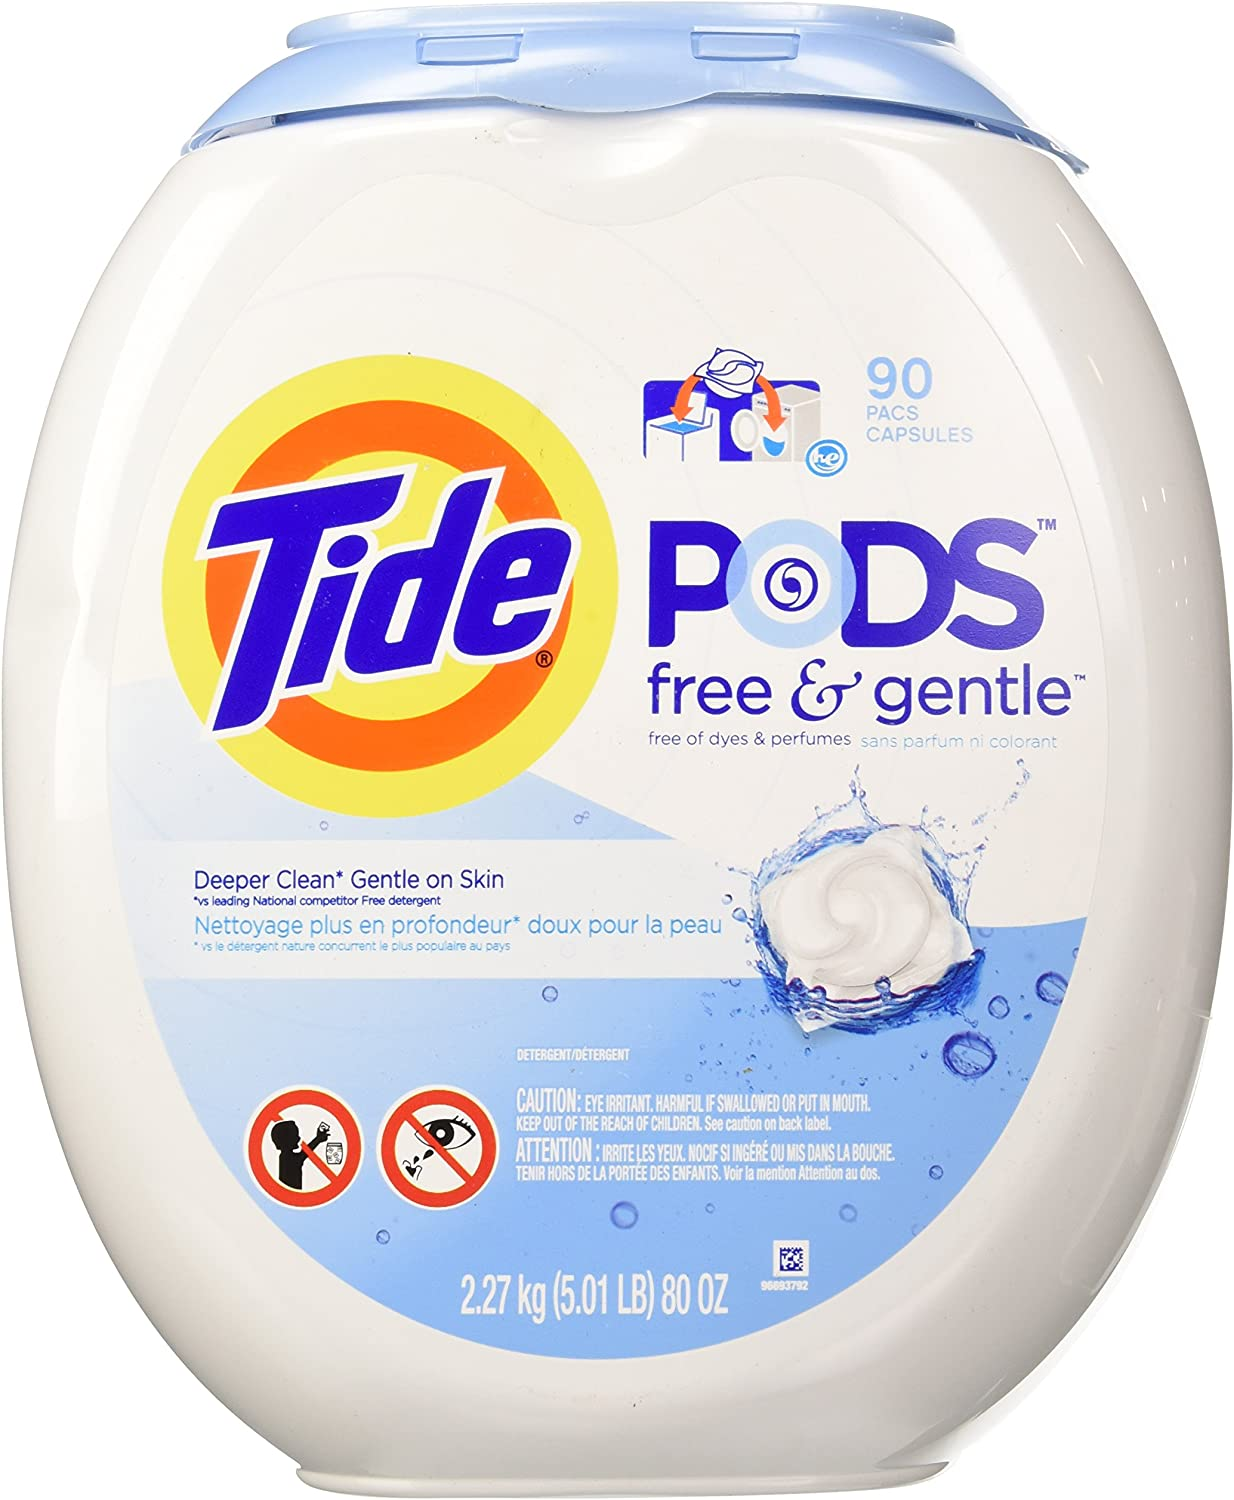 Tide Long-awaited Free Gentle Laundry High quality 90 ct. Pod